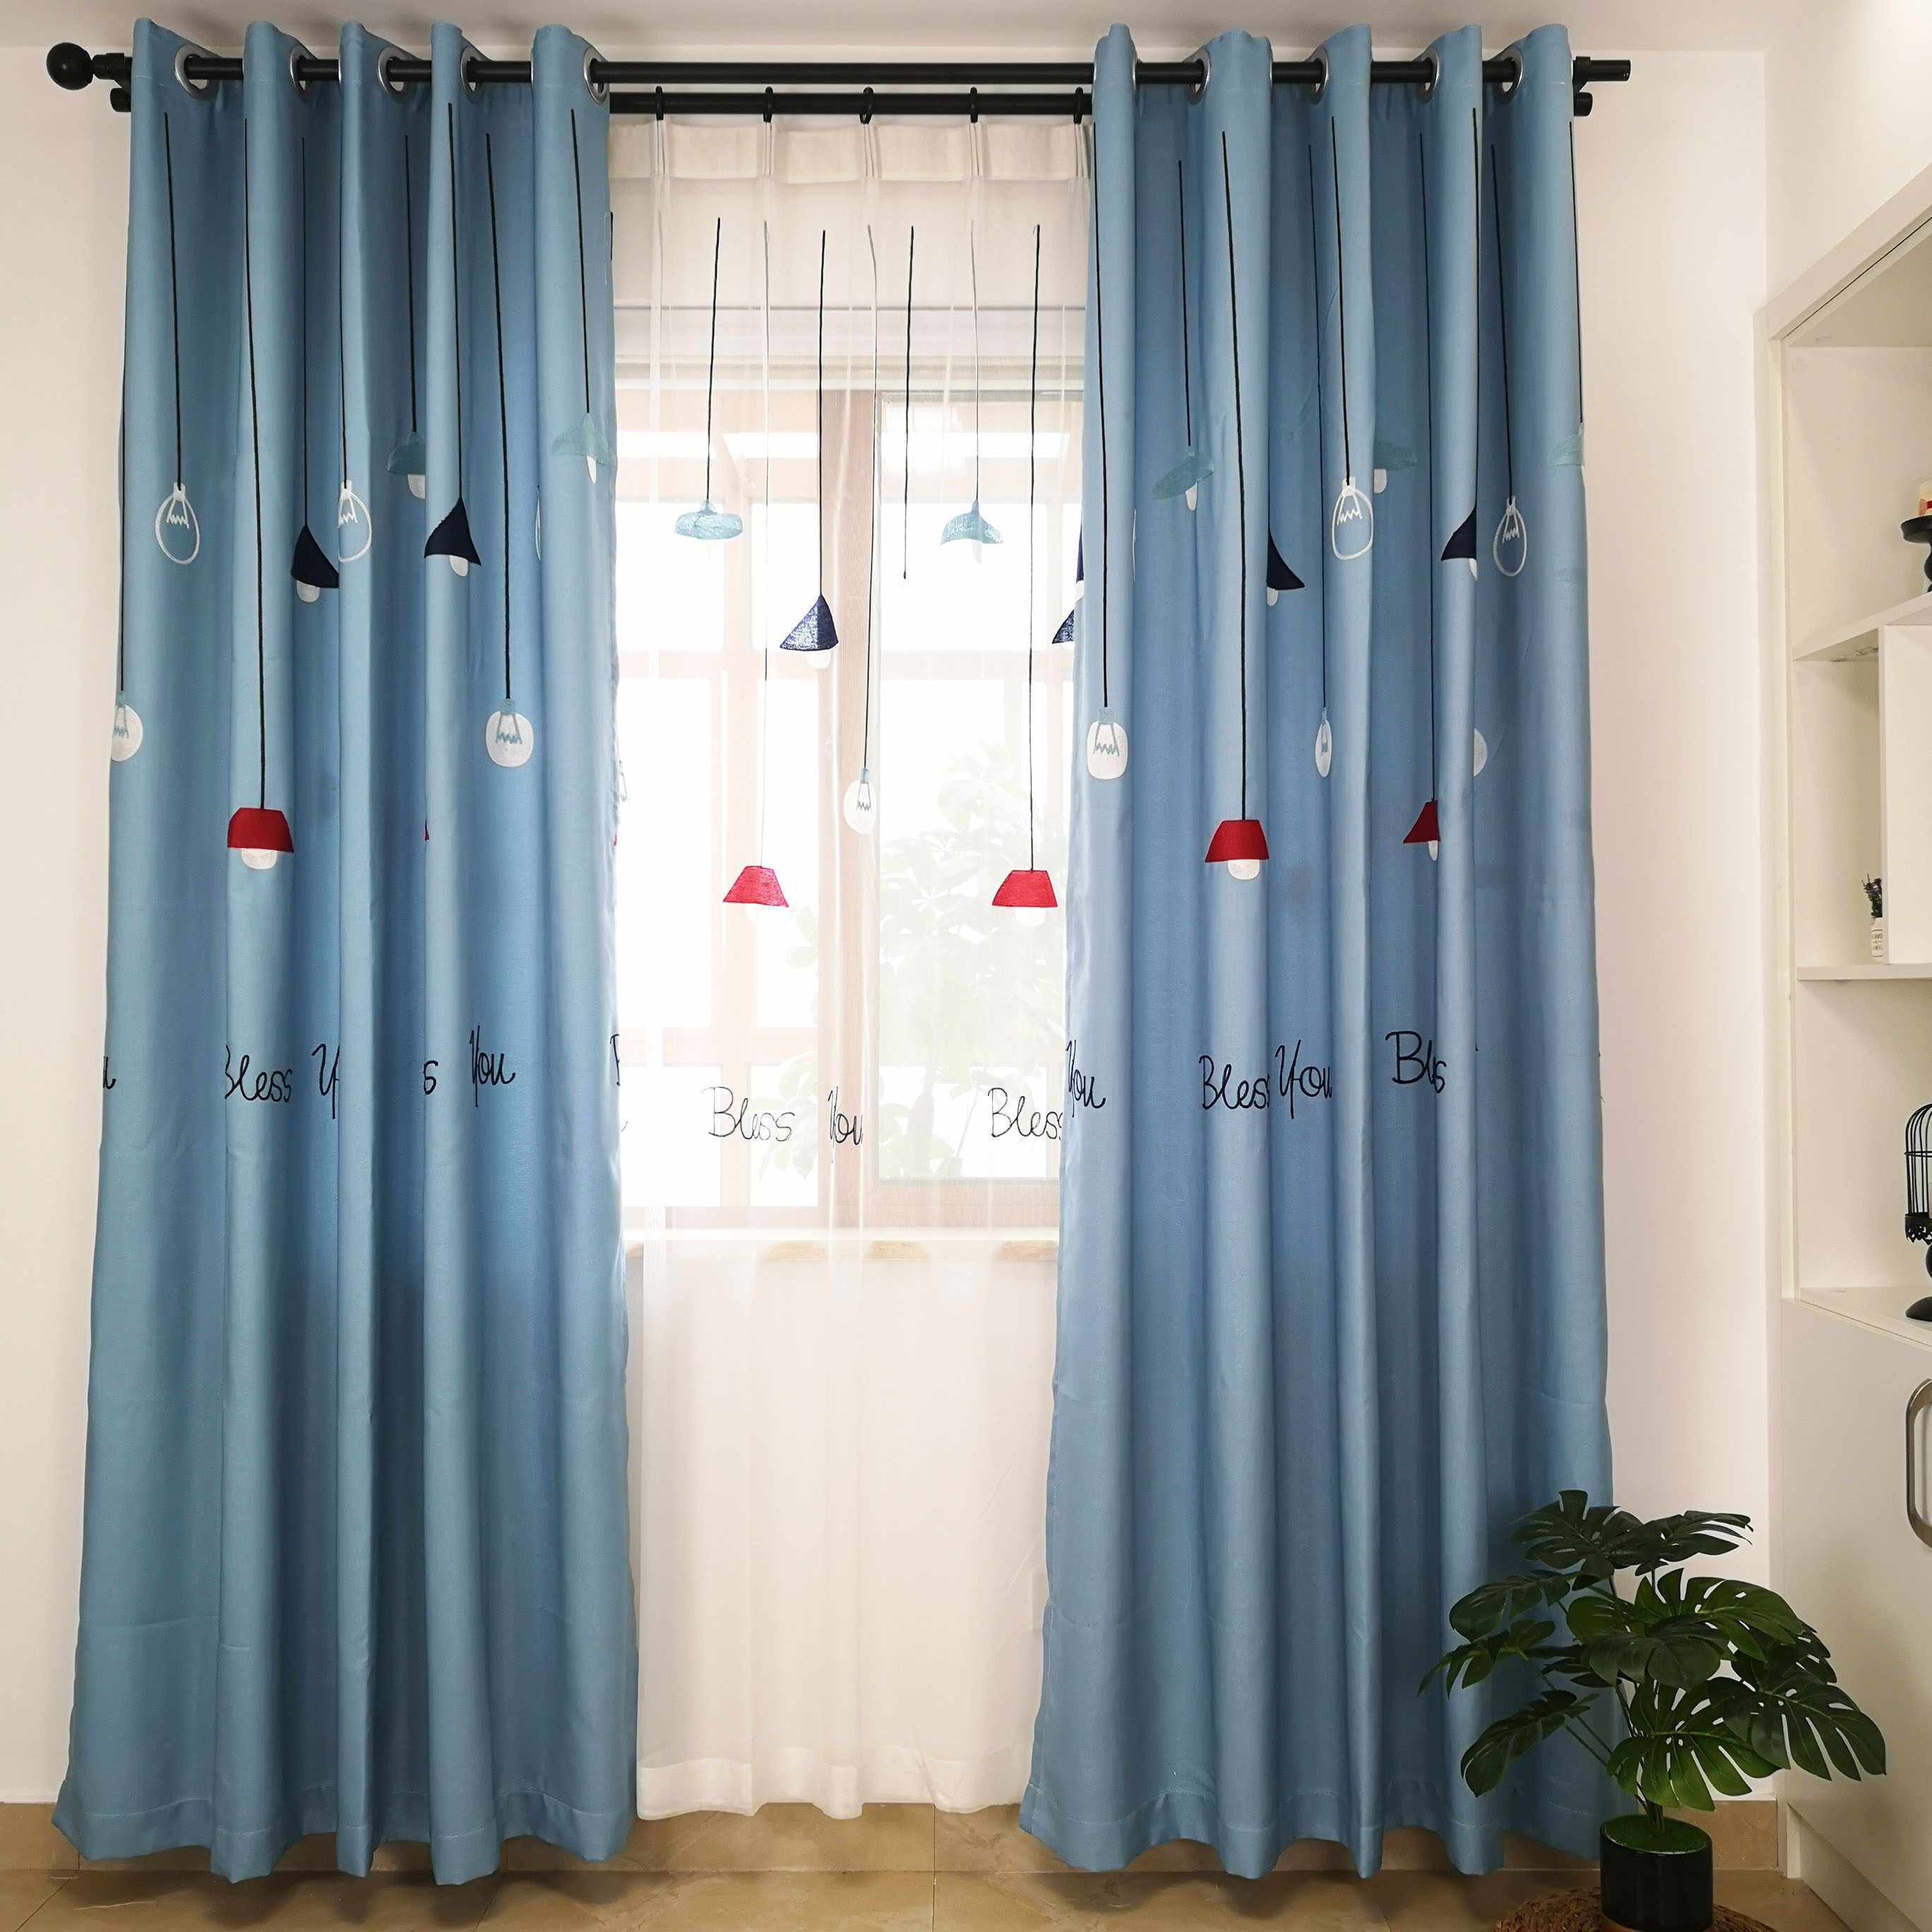 Slow Soul Light Cartoon Modern Embroidered Curtain Curtains For Bedroom Kids Room Children Blue Grey Window Bed Kitchen Living